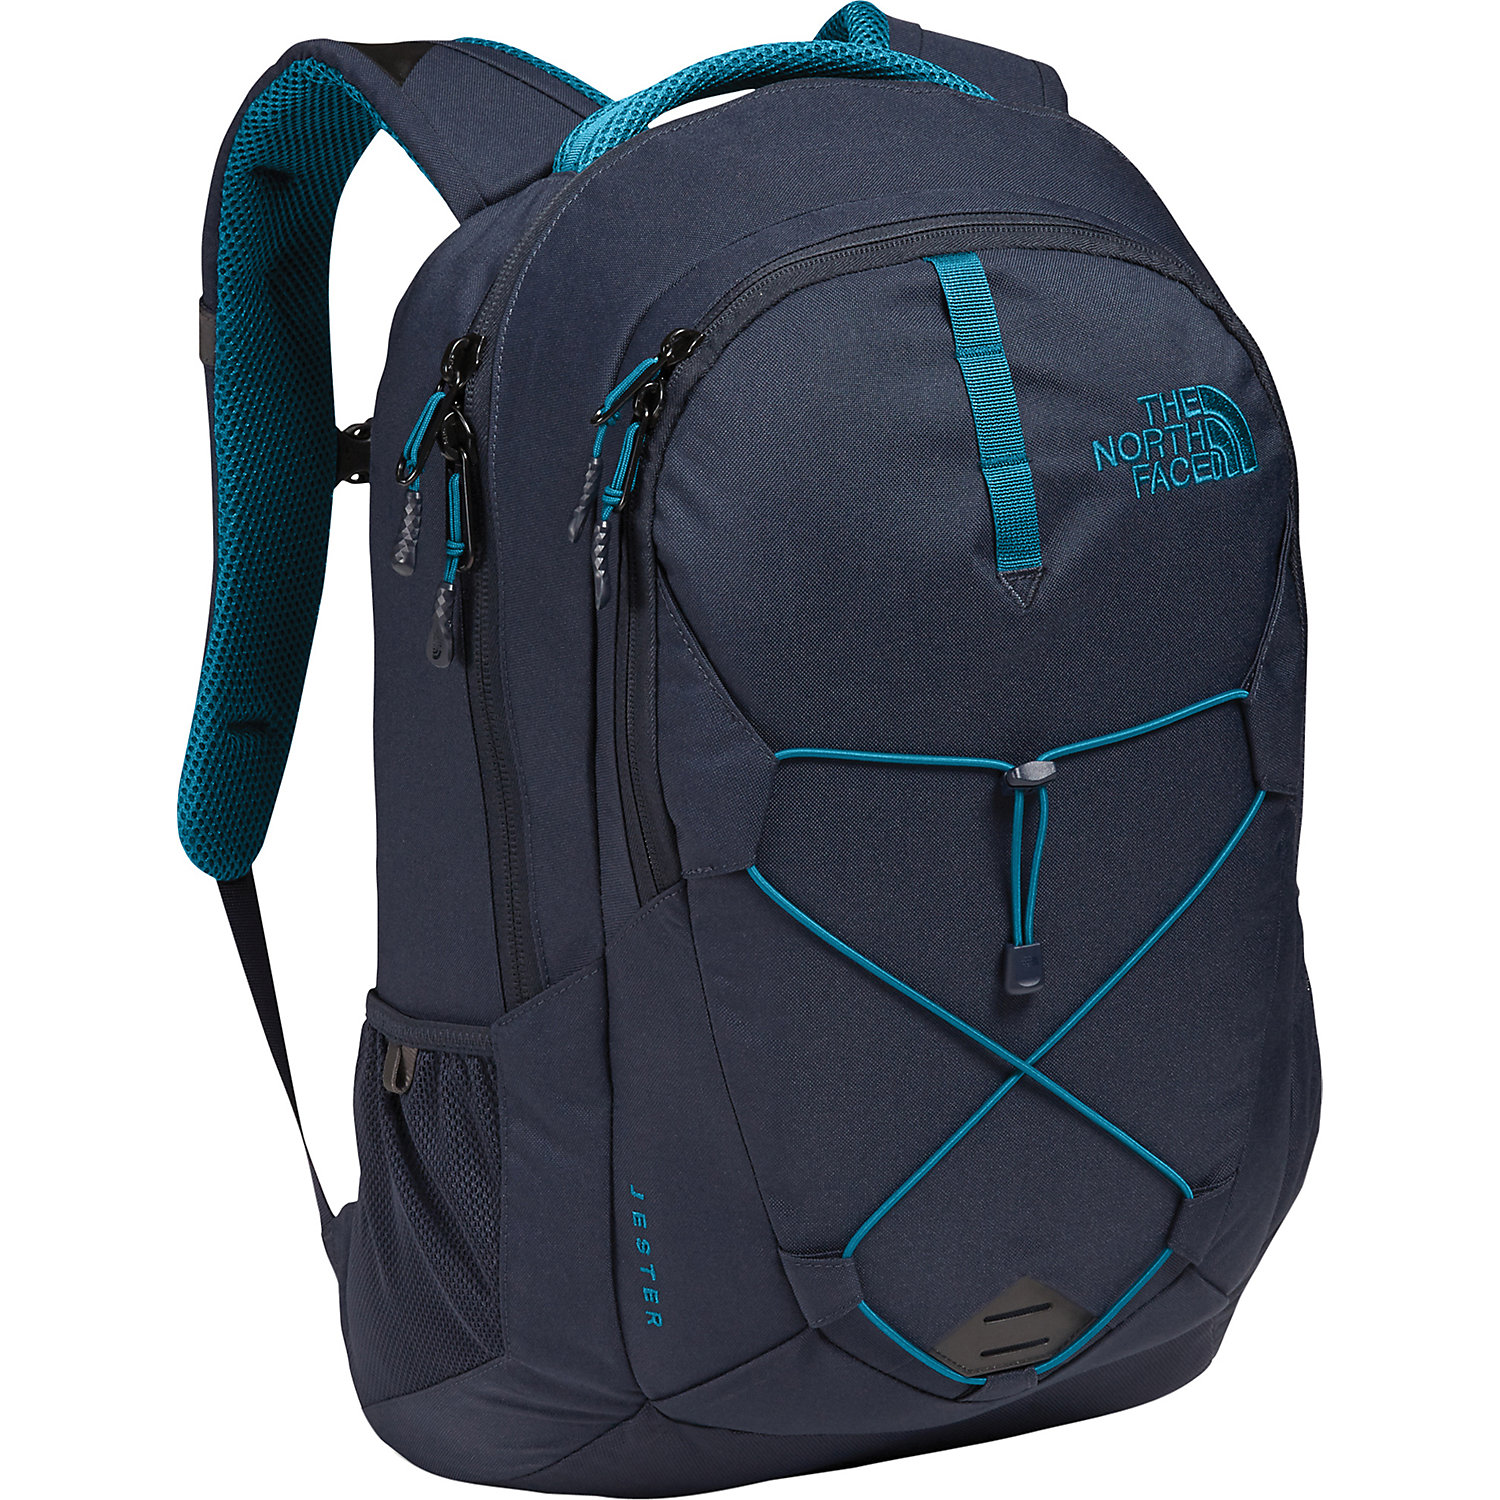 2b3429c3b72 The North Face Jester Backpack - Moosejaw